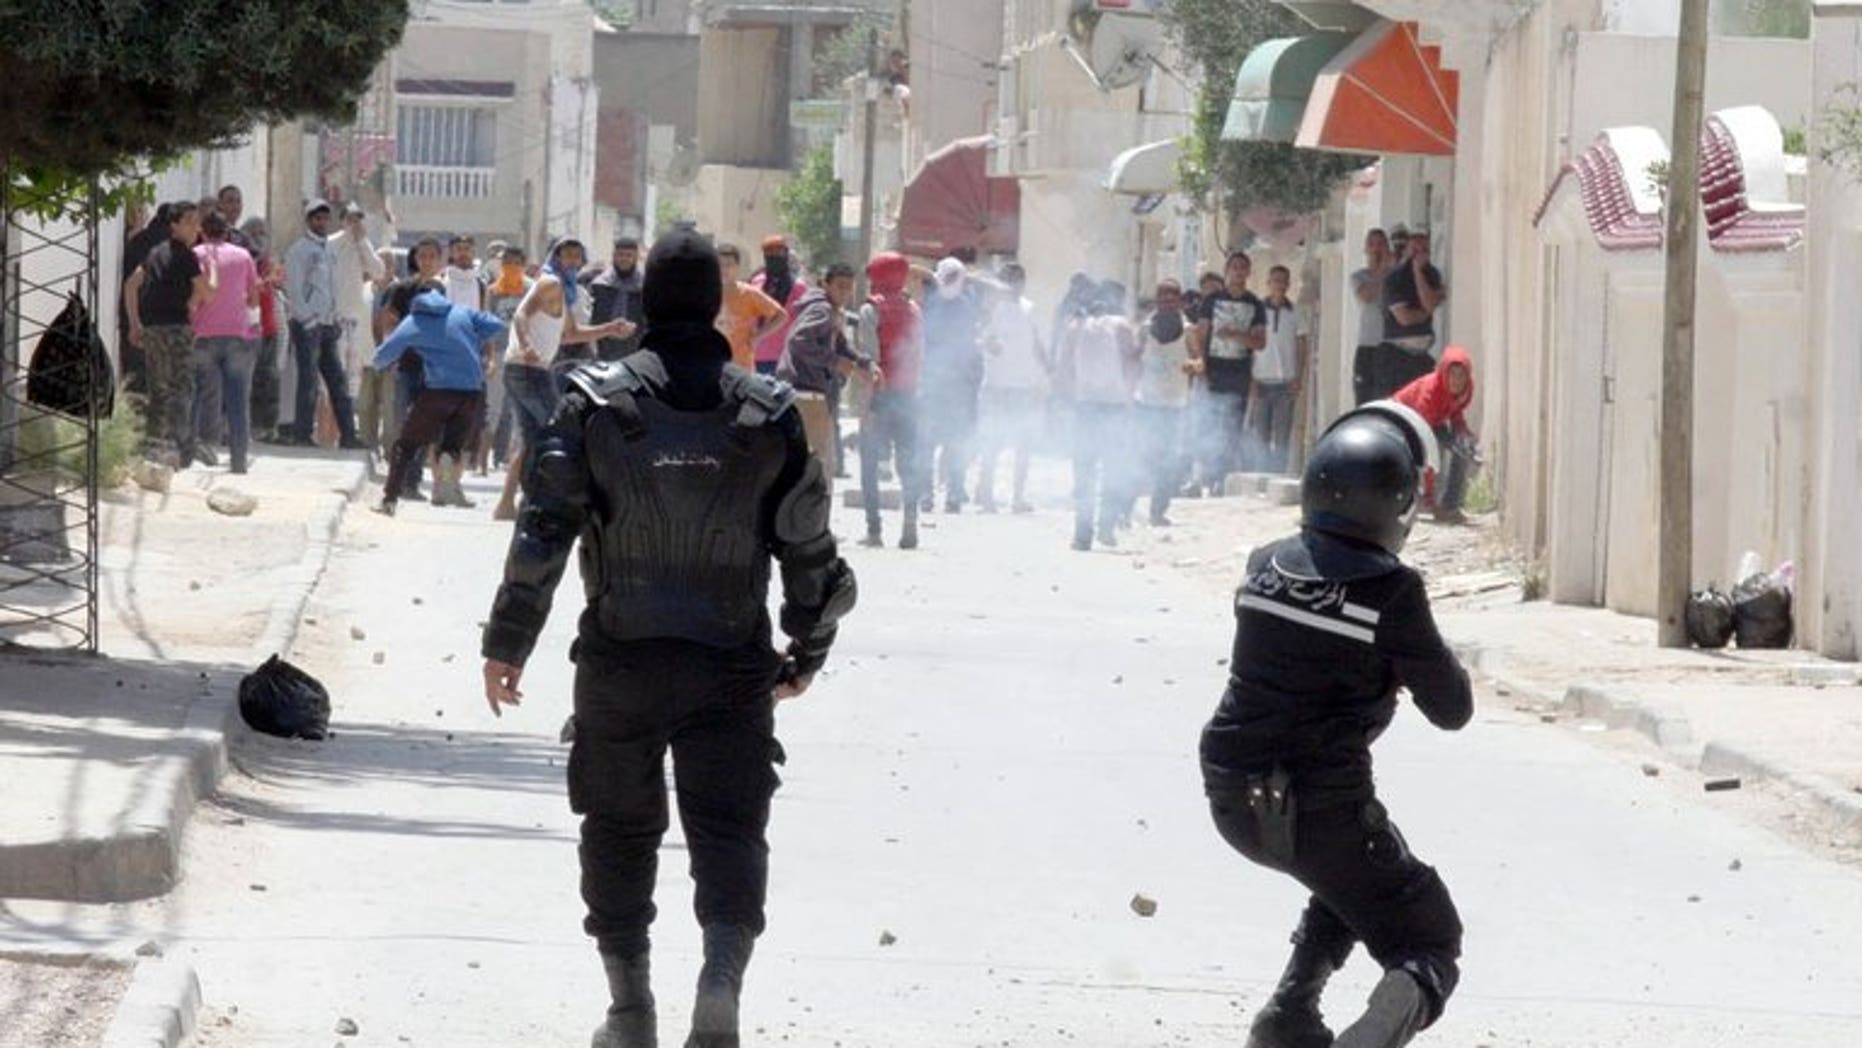 """Police clash with radical Islamists on May 19 in Ettadhamen, a poor neighbourhood west of Tunis. The public prosecutor is due to question 19 actors who were attacked by radical Salafist Muslims for alleged """"indecent"""" behaviour, their lawyer told AFP on Sunday."""